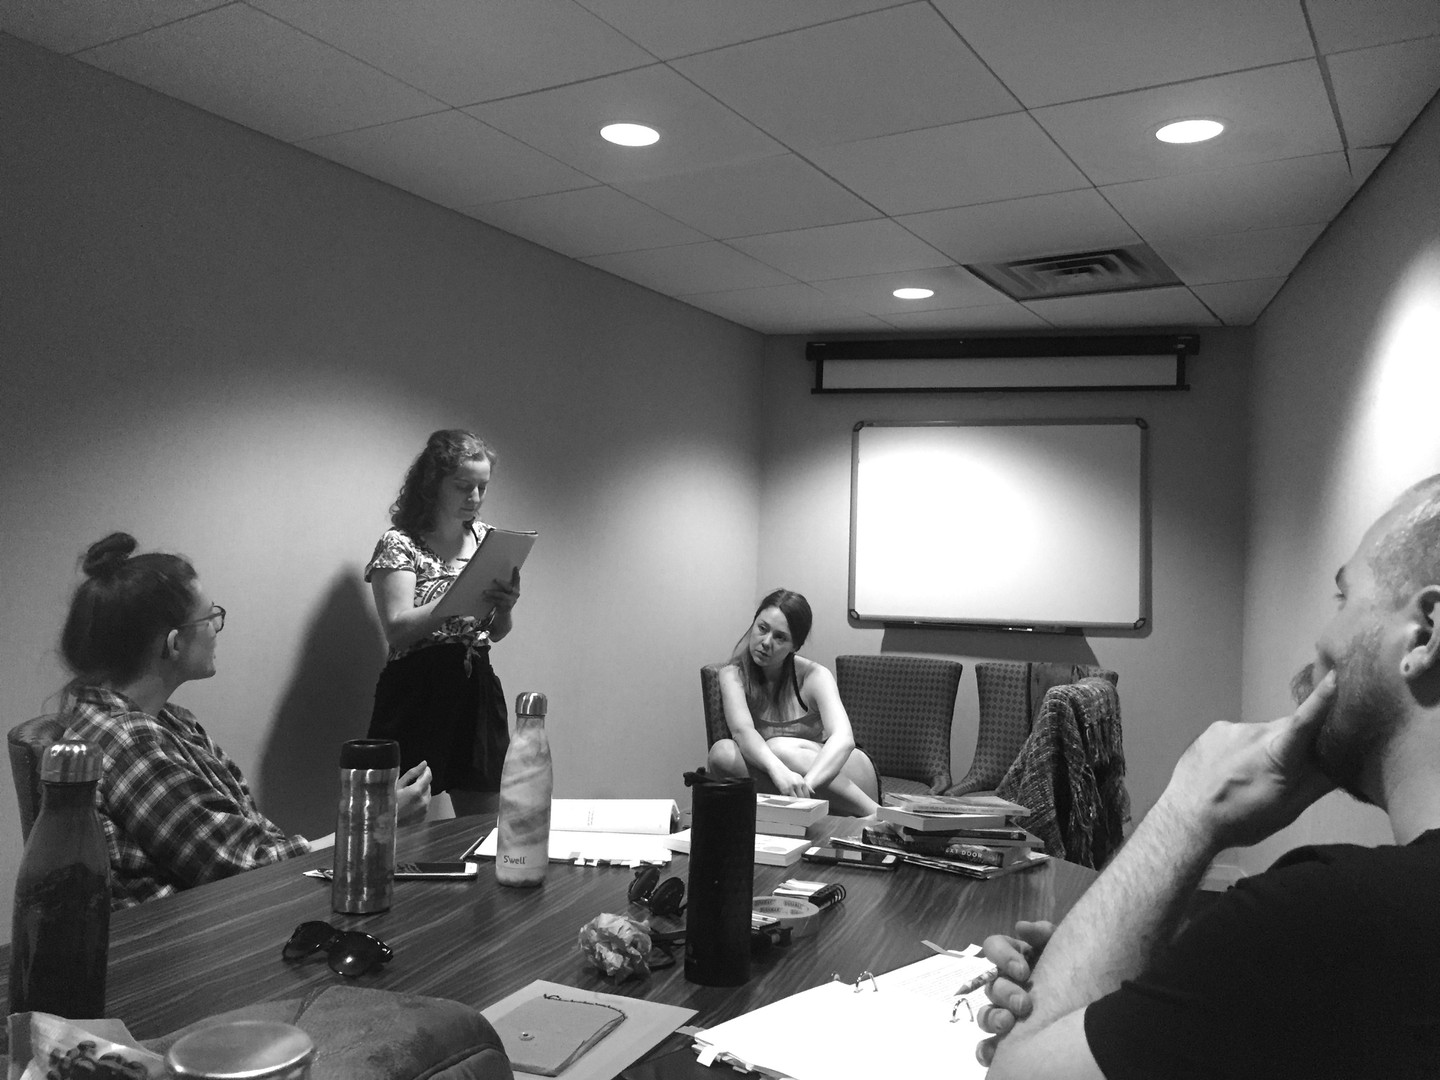 Behind the Scenes: Boardroom discussions and staging Act 2